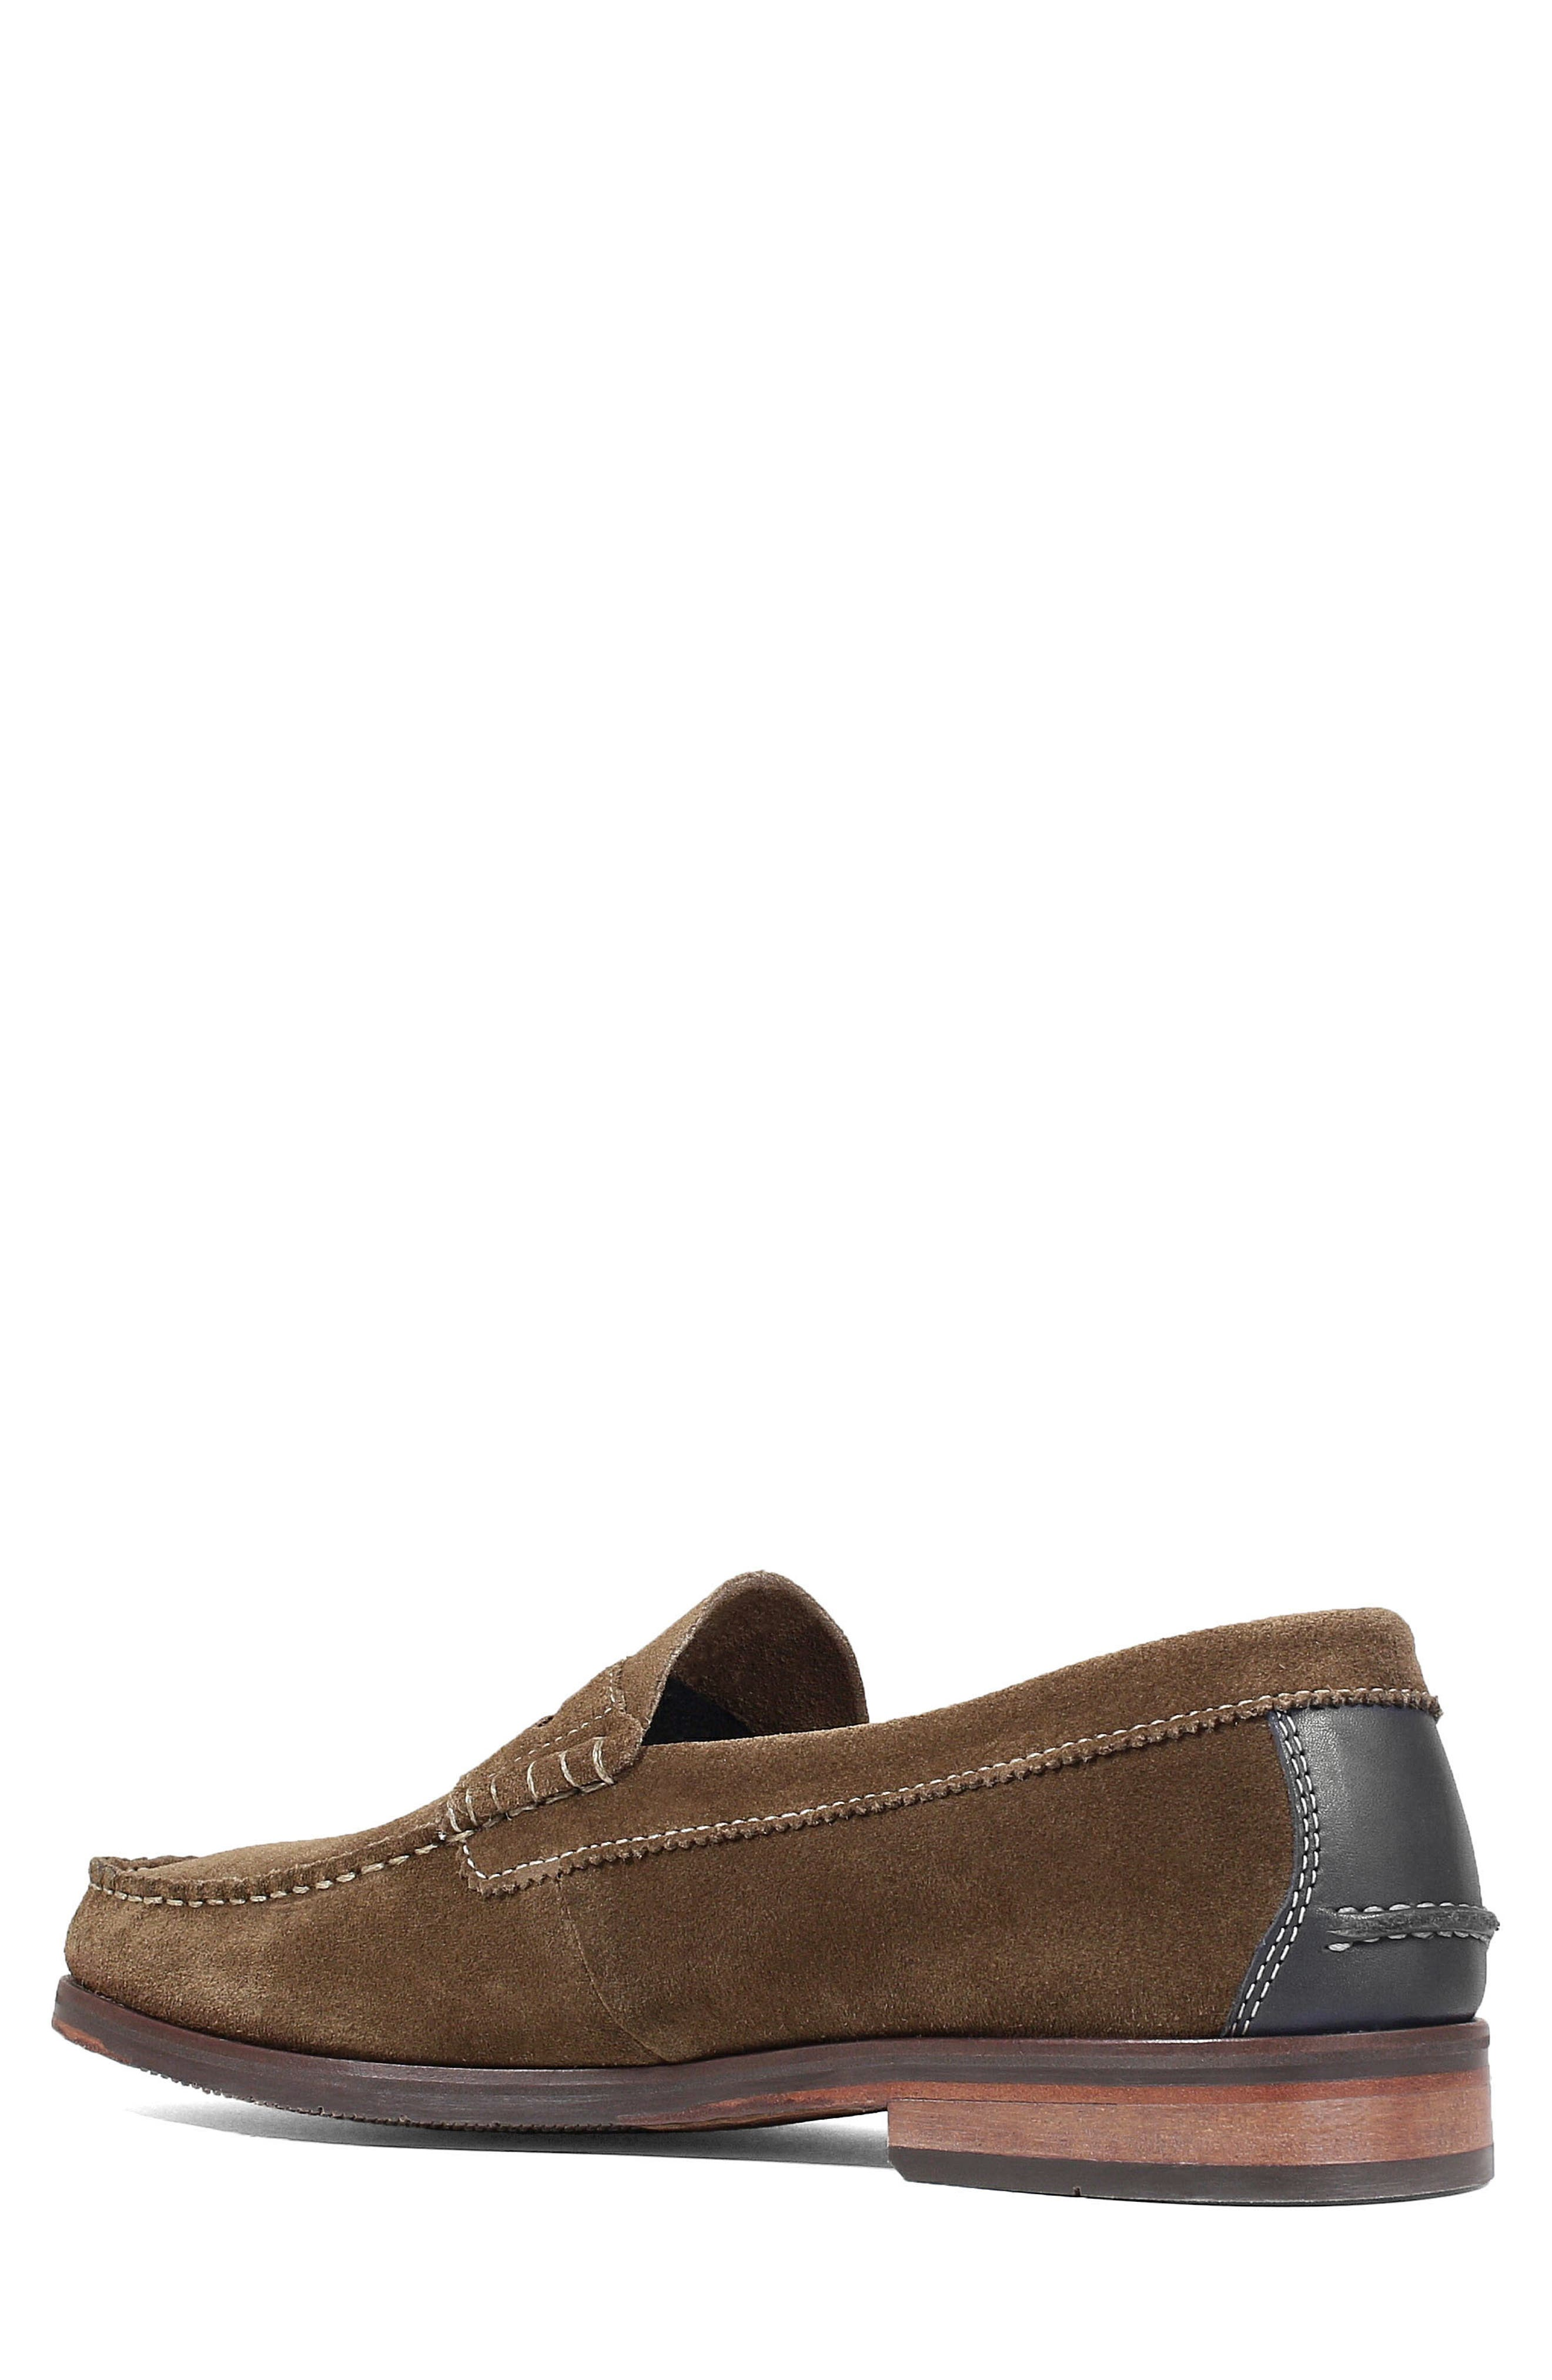 Heads-Up Penny Loafer,                             Alternate thumbnail 2, color,                             SNUFF SUEDE